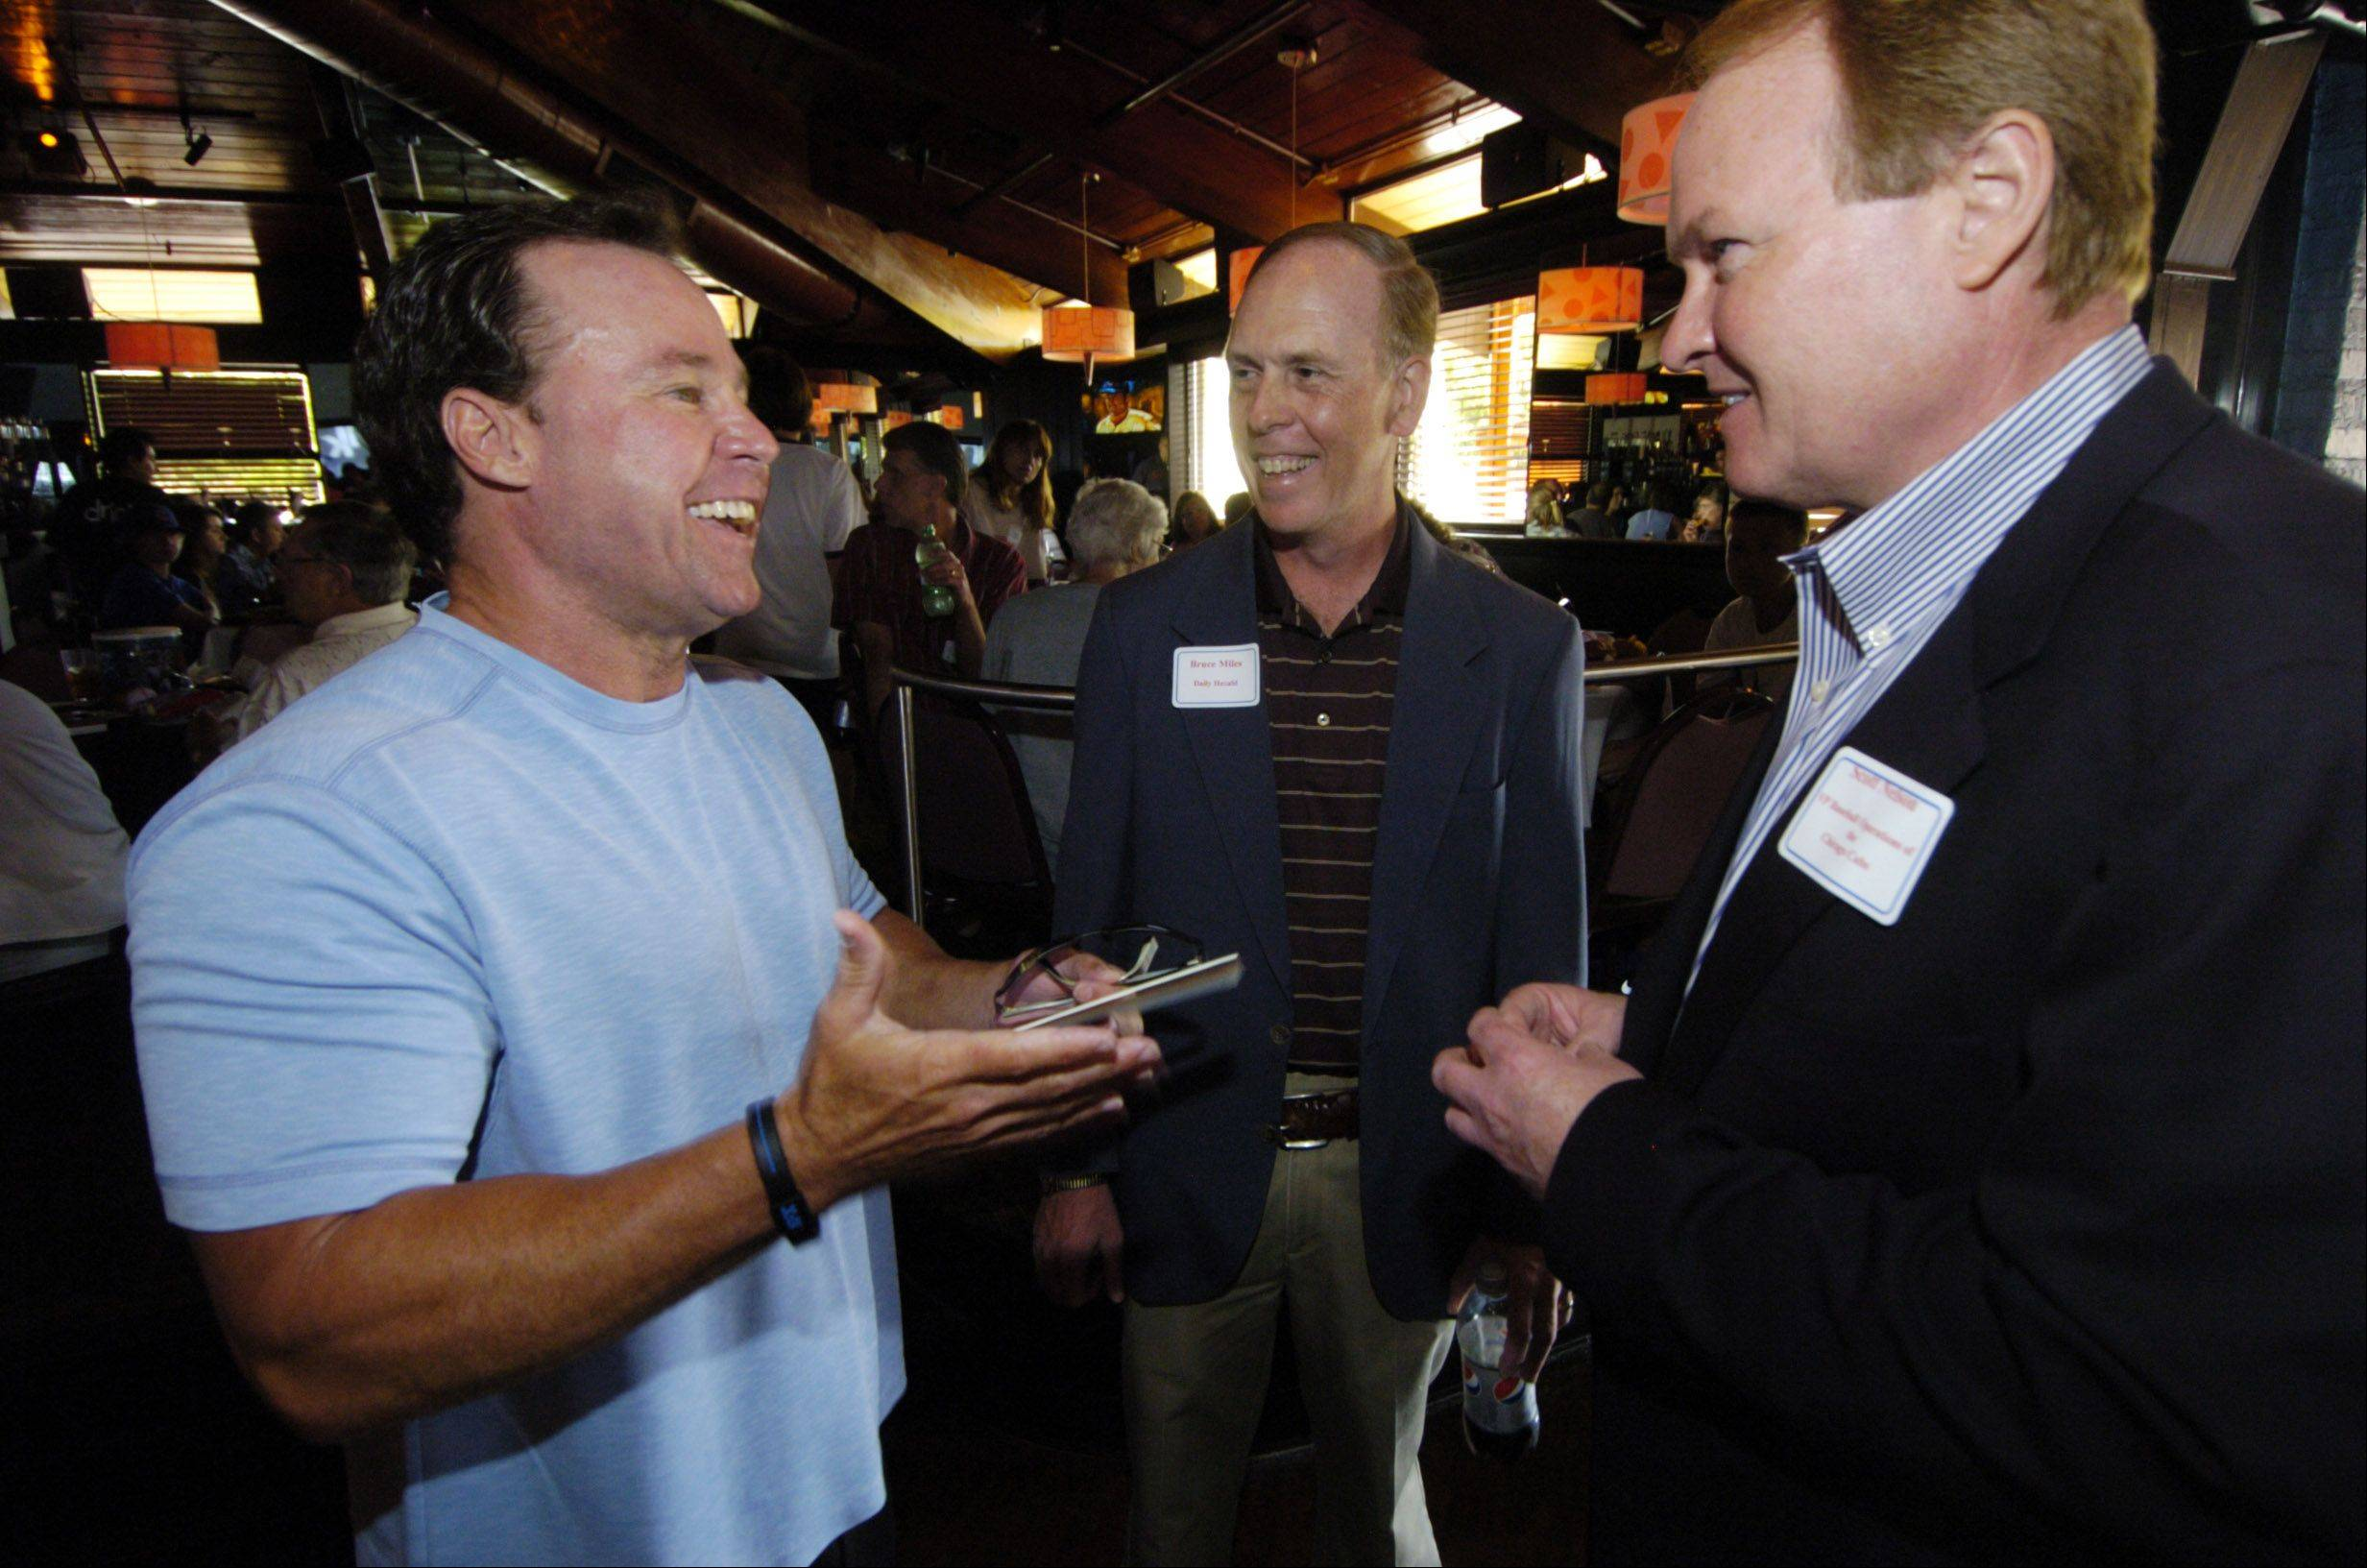 Ron Santo Jr., left, talks with Daily Herald Cubs beat writer Bruce Miles, center, and Scott Nelson, vice president of baseball operations for the Chicago Cubs, during a Subscriber Total Access event celebrating the life of Ron Santo, at Drink Nightclub in Schaumburg Thursday.